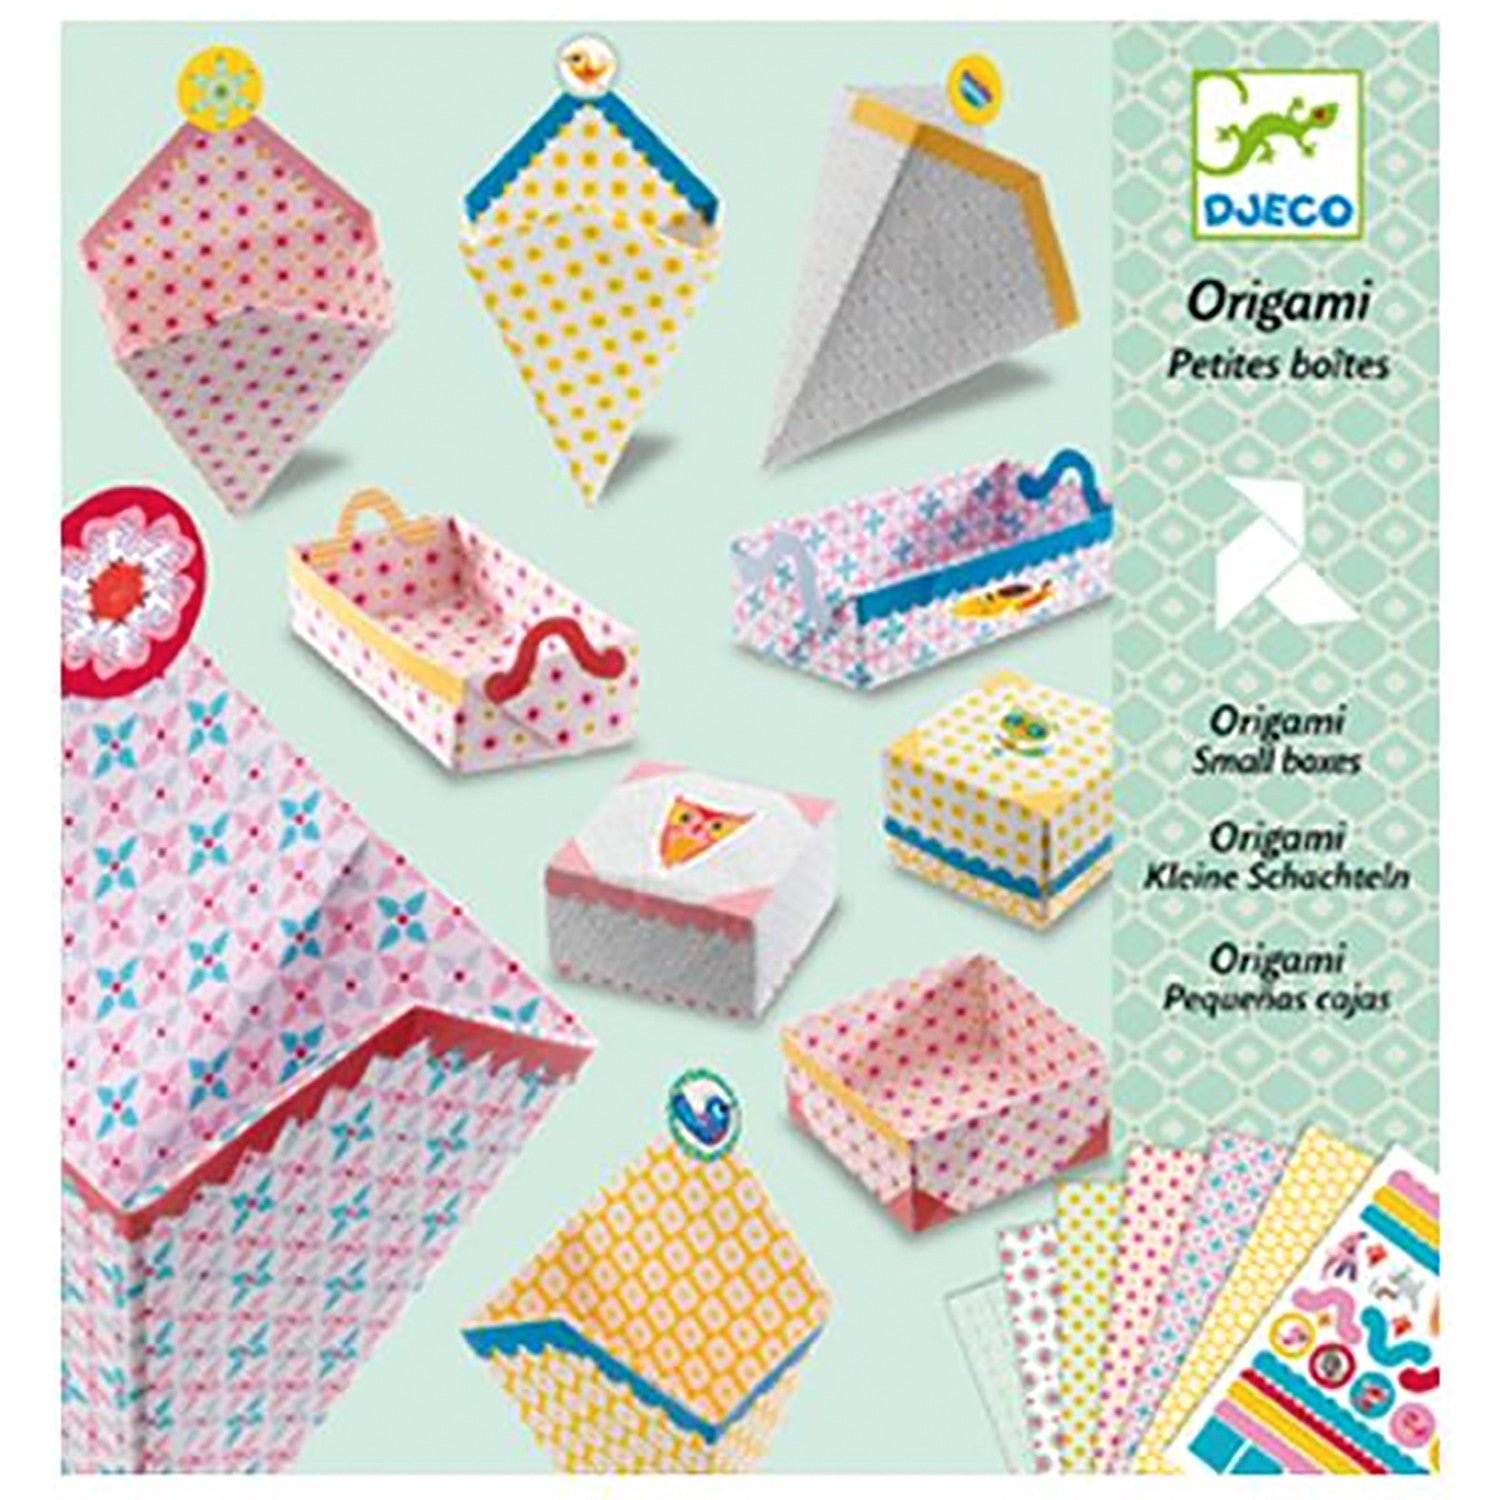 Djeco Origami - Small Boxes